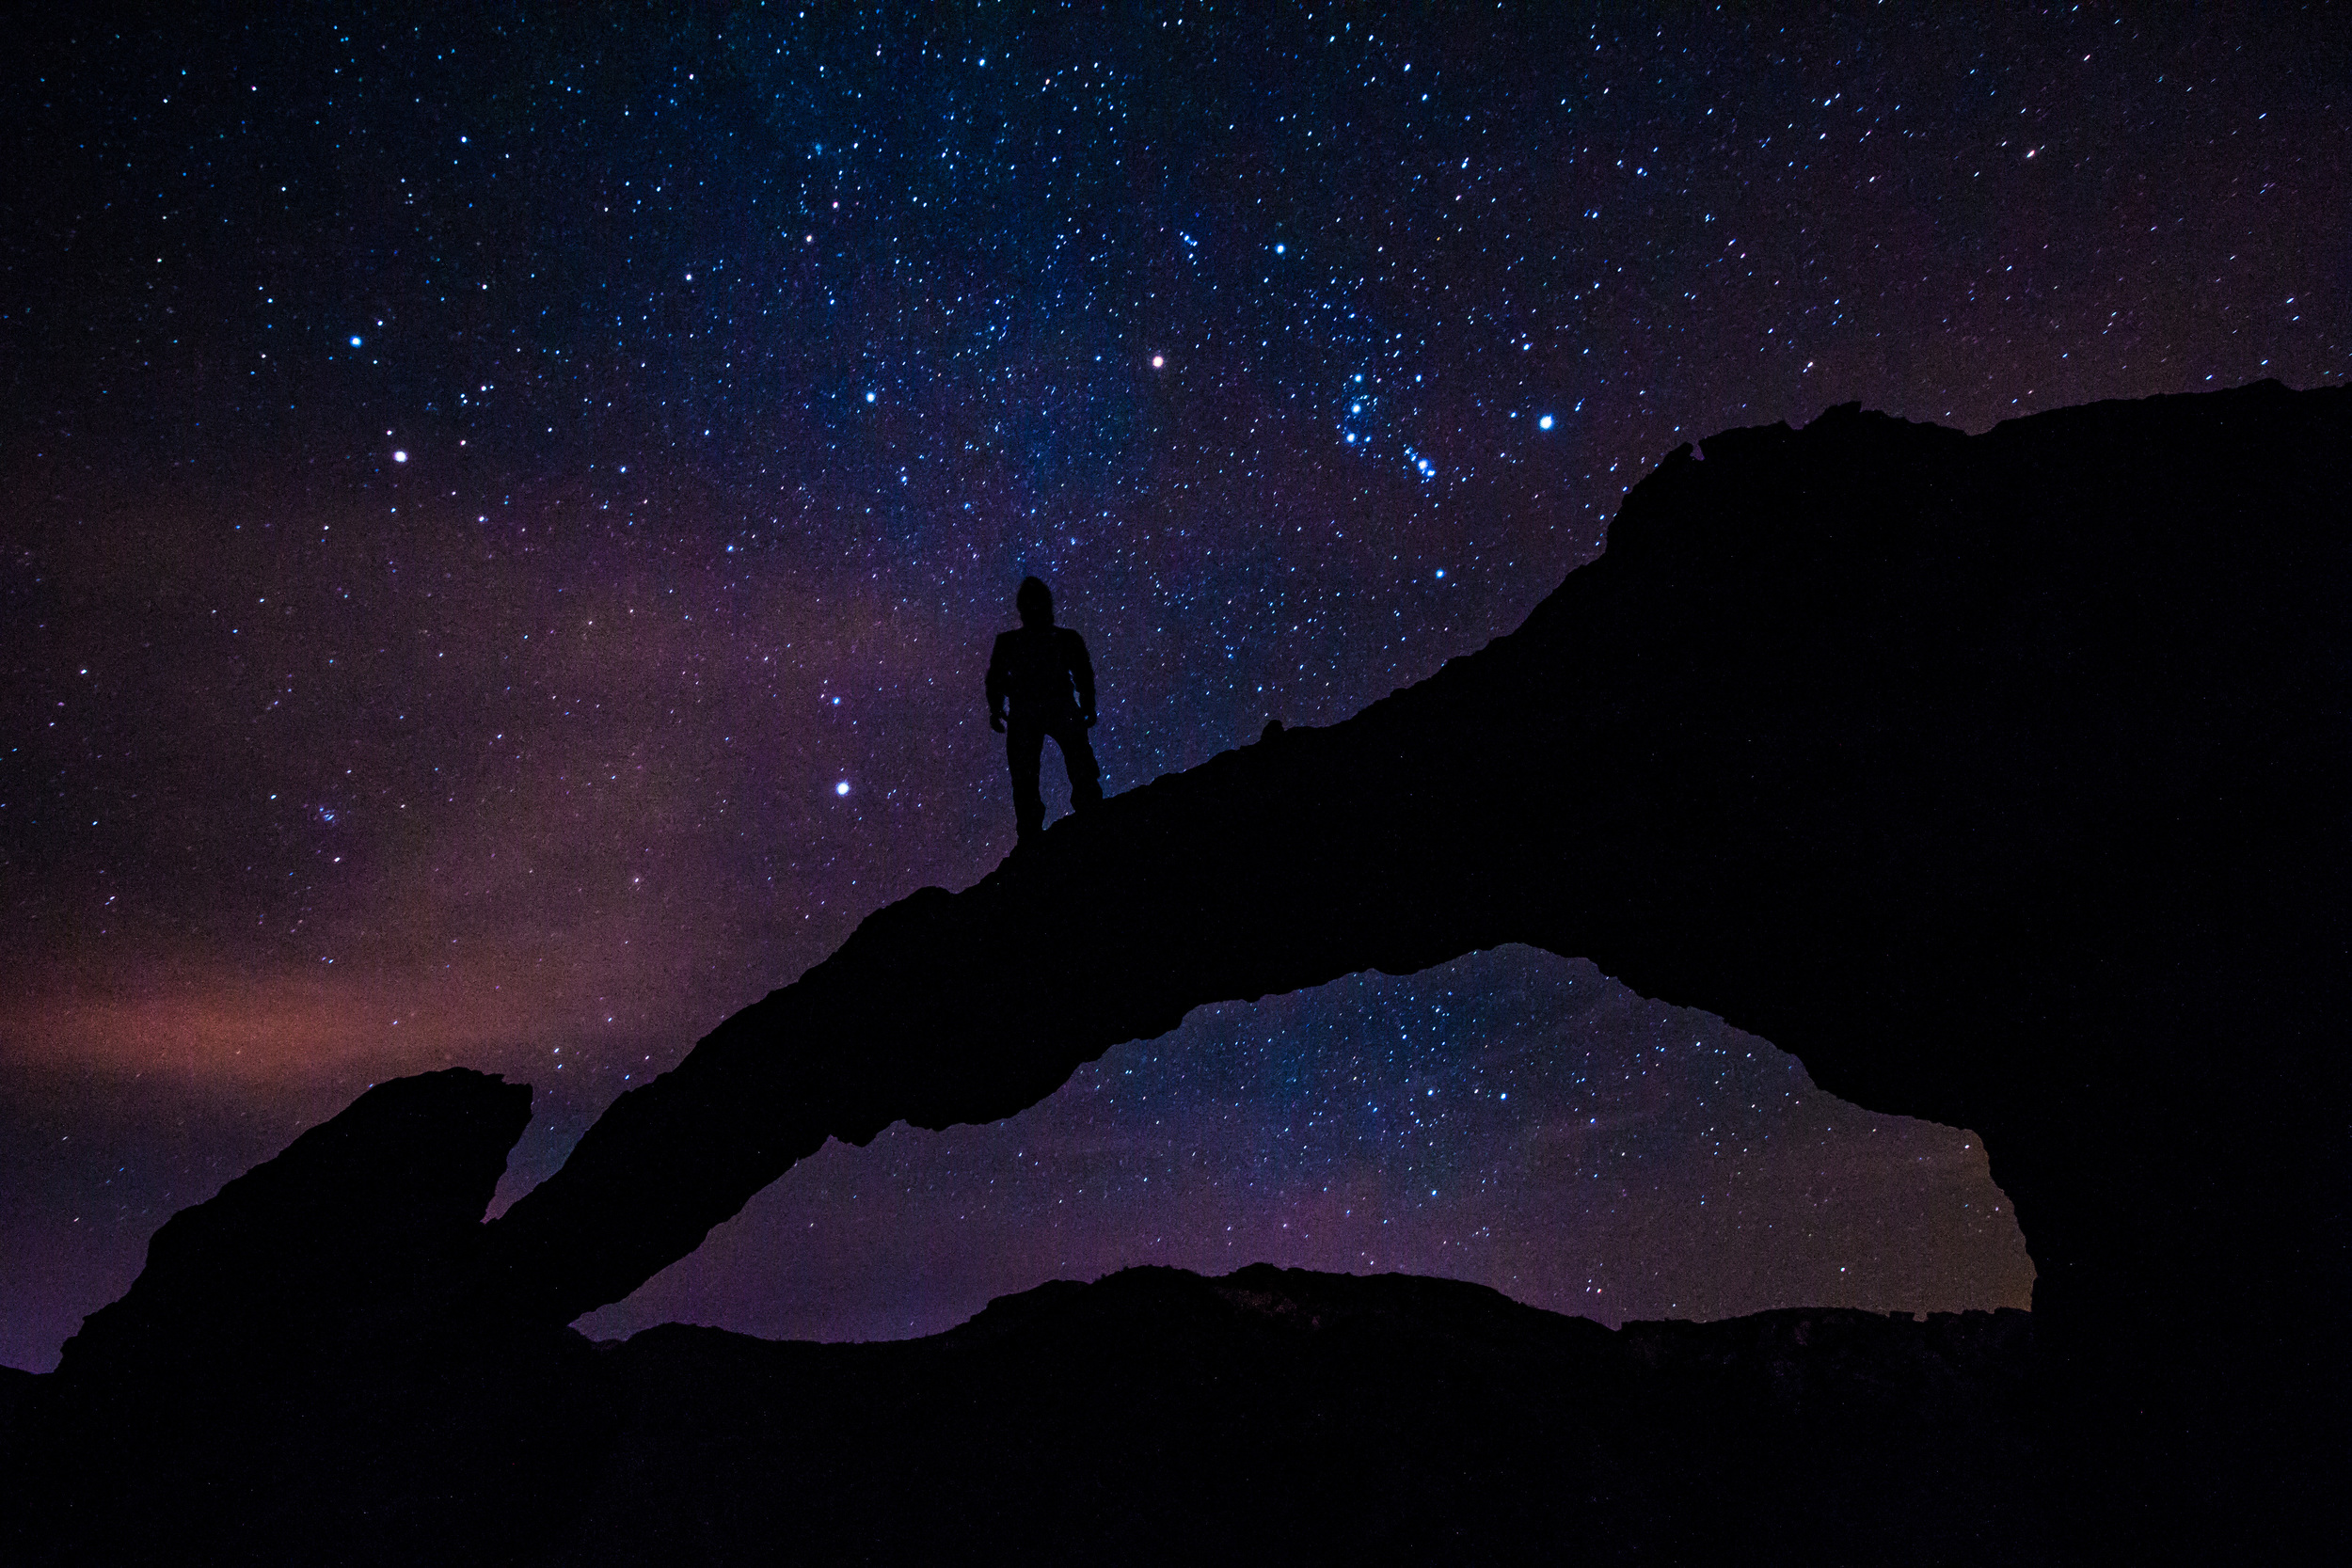 Night Photography at Elephant Arch, Superstition Mountains, Arizona